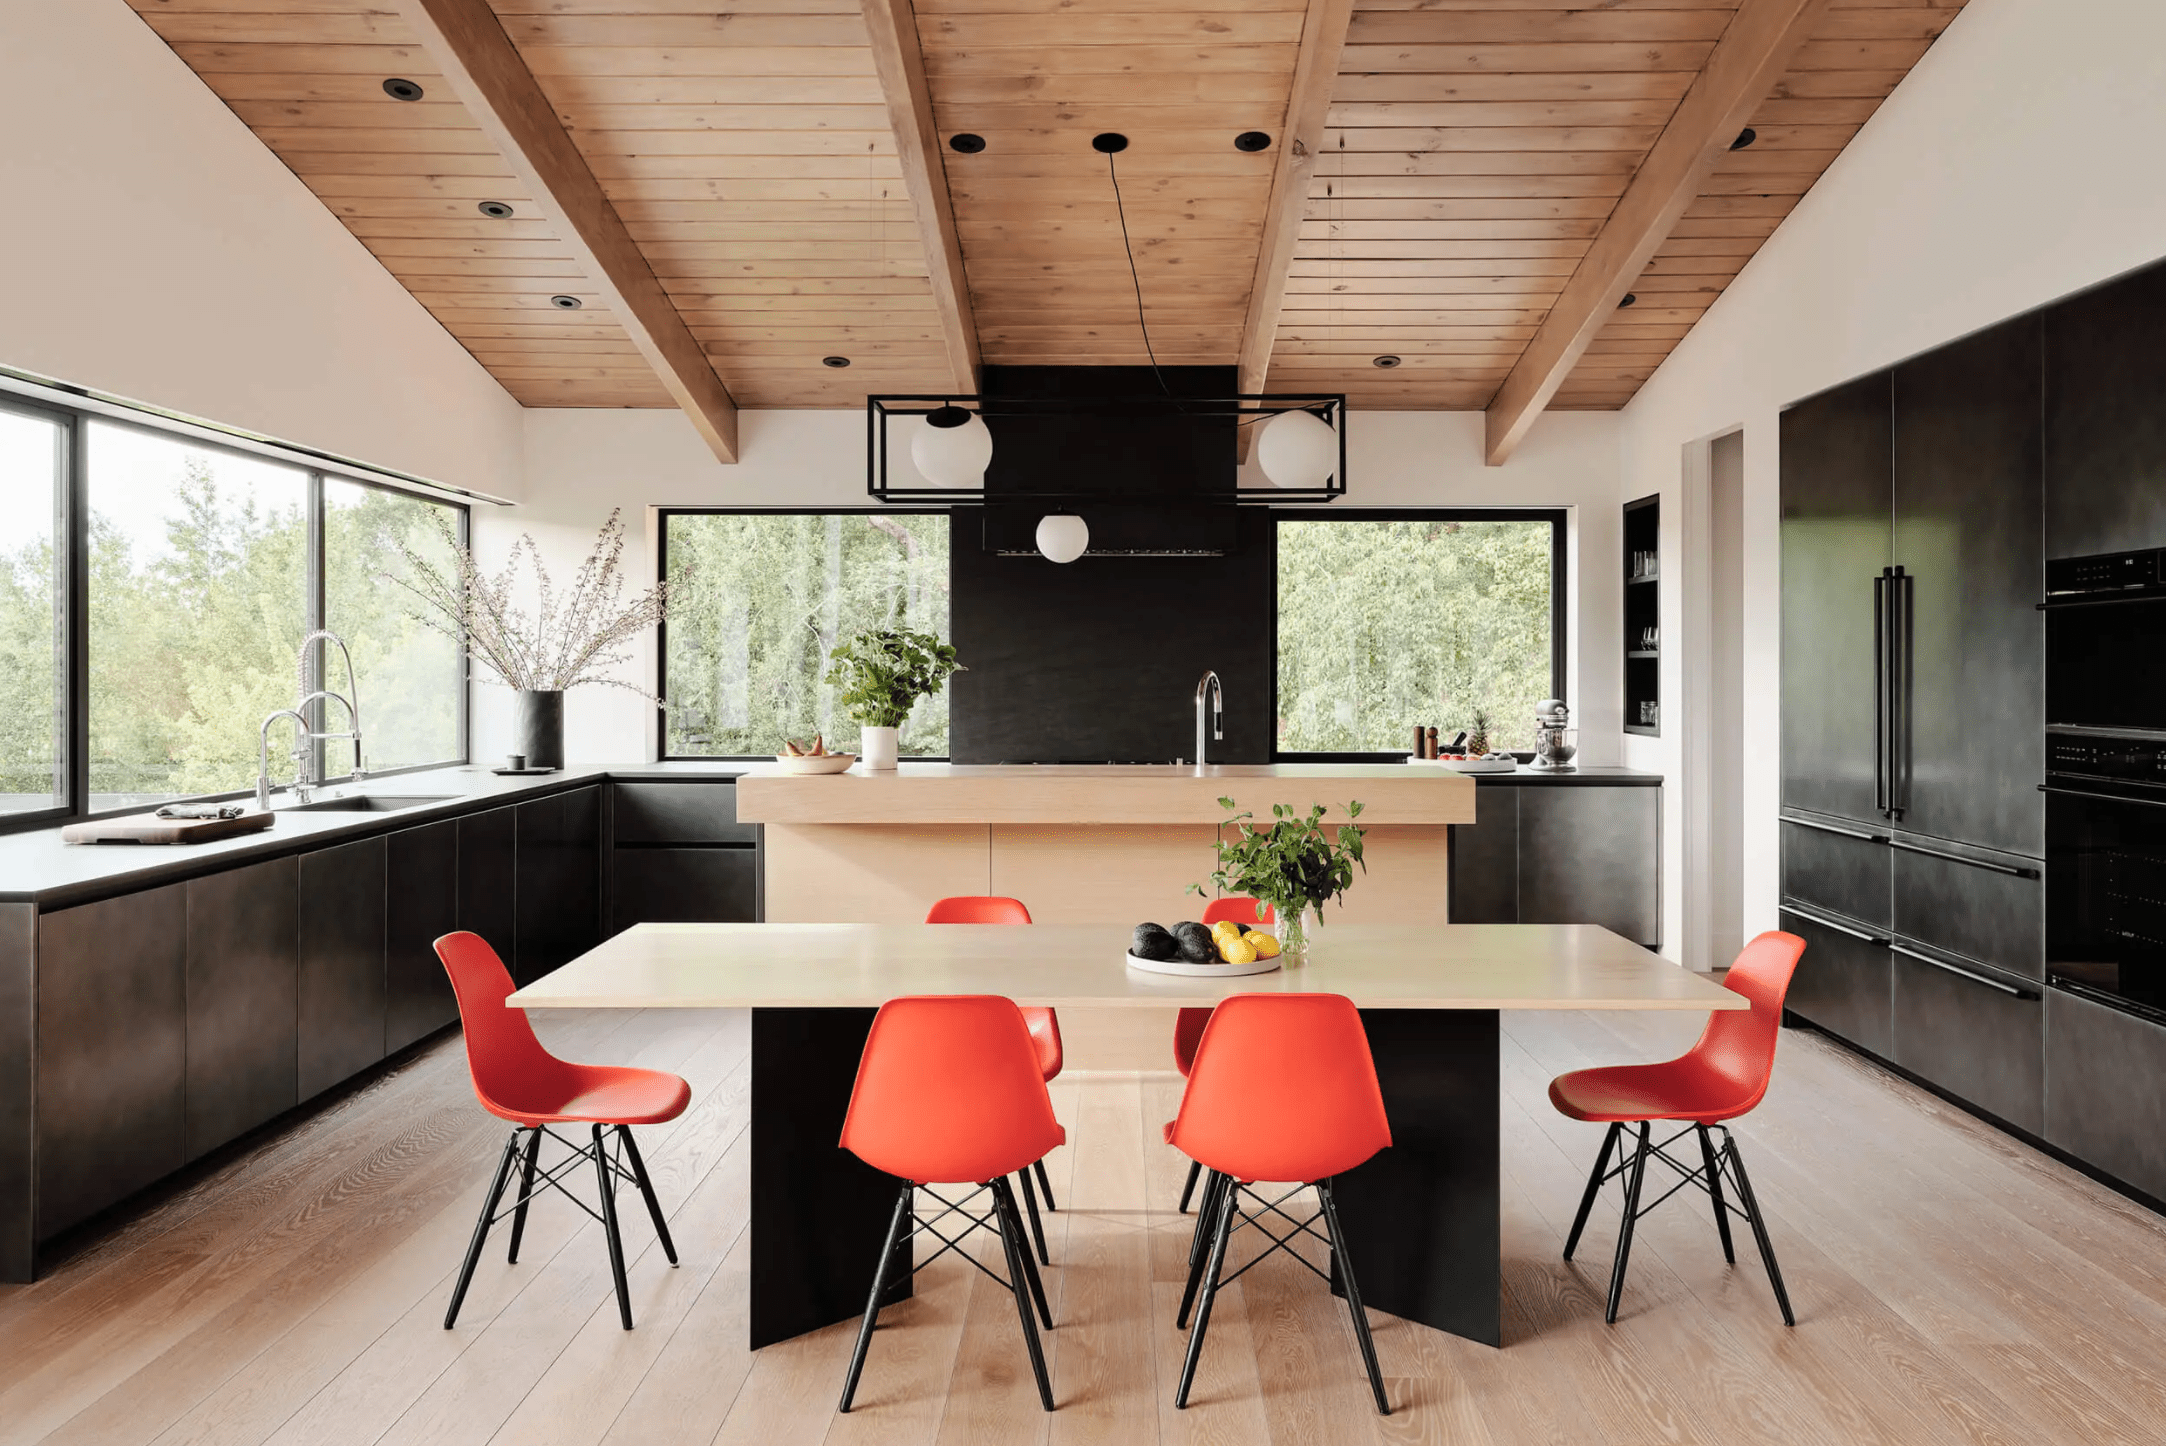 A modern kitchen with walls lined with windows—one of which acts as a sink backsplash